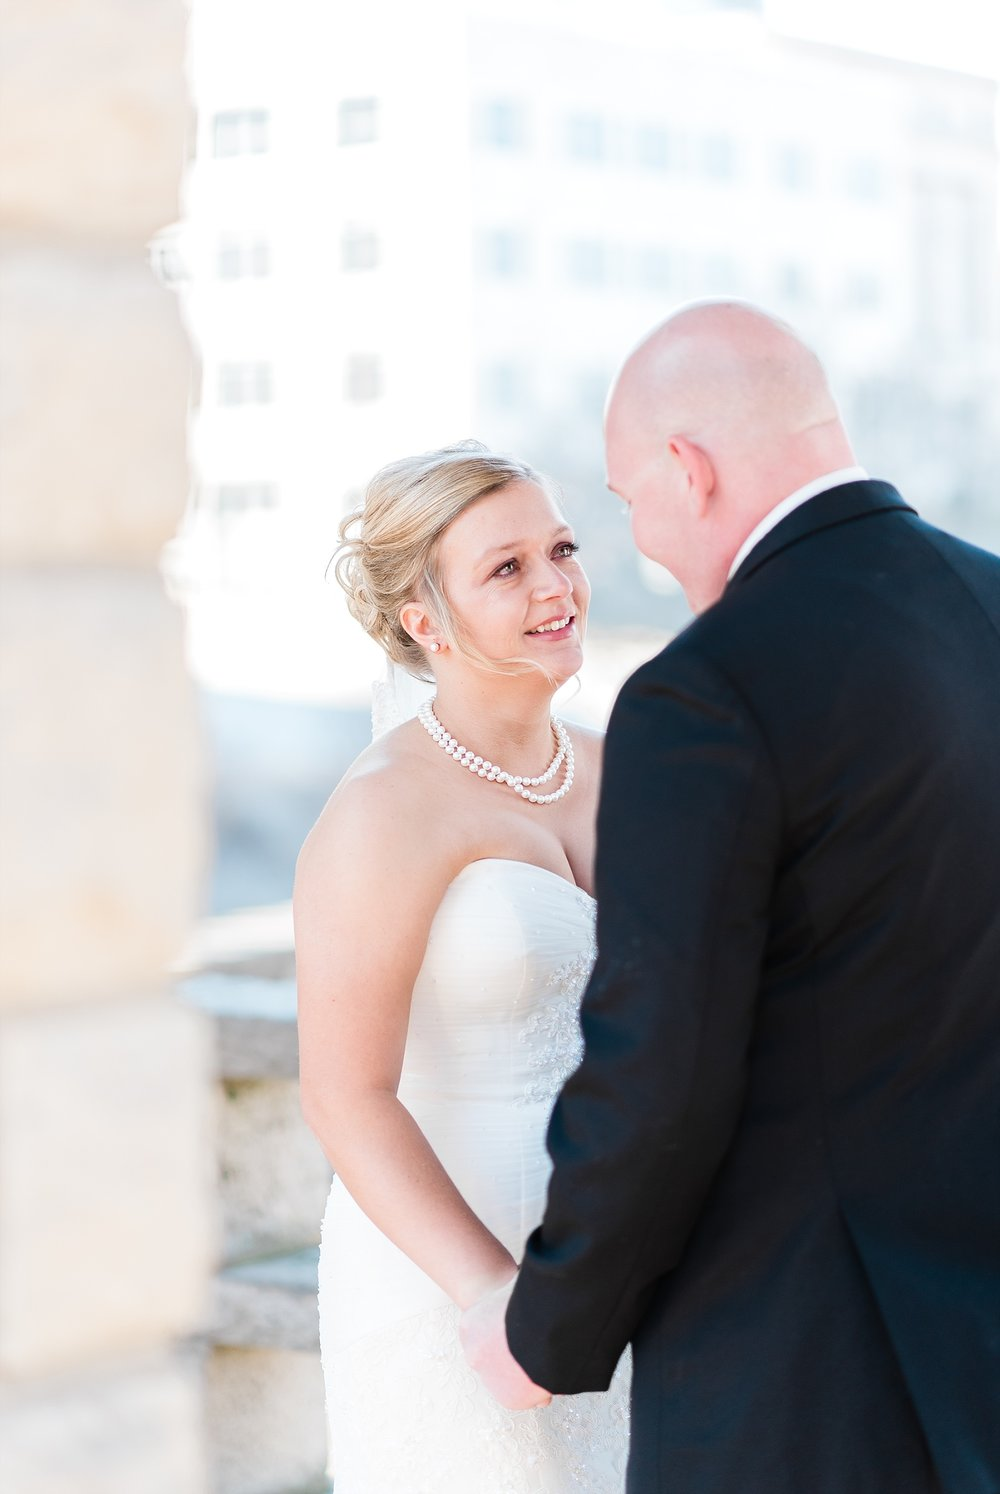 Light and Airy Spring Wedding Downtown Jefferson City Missouri State Capitol Millbottom_0010.jpg